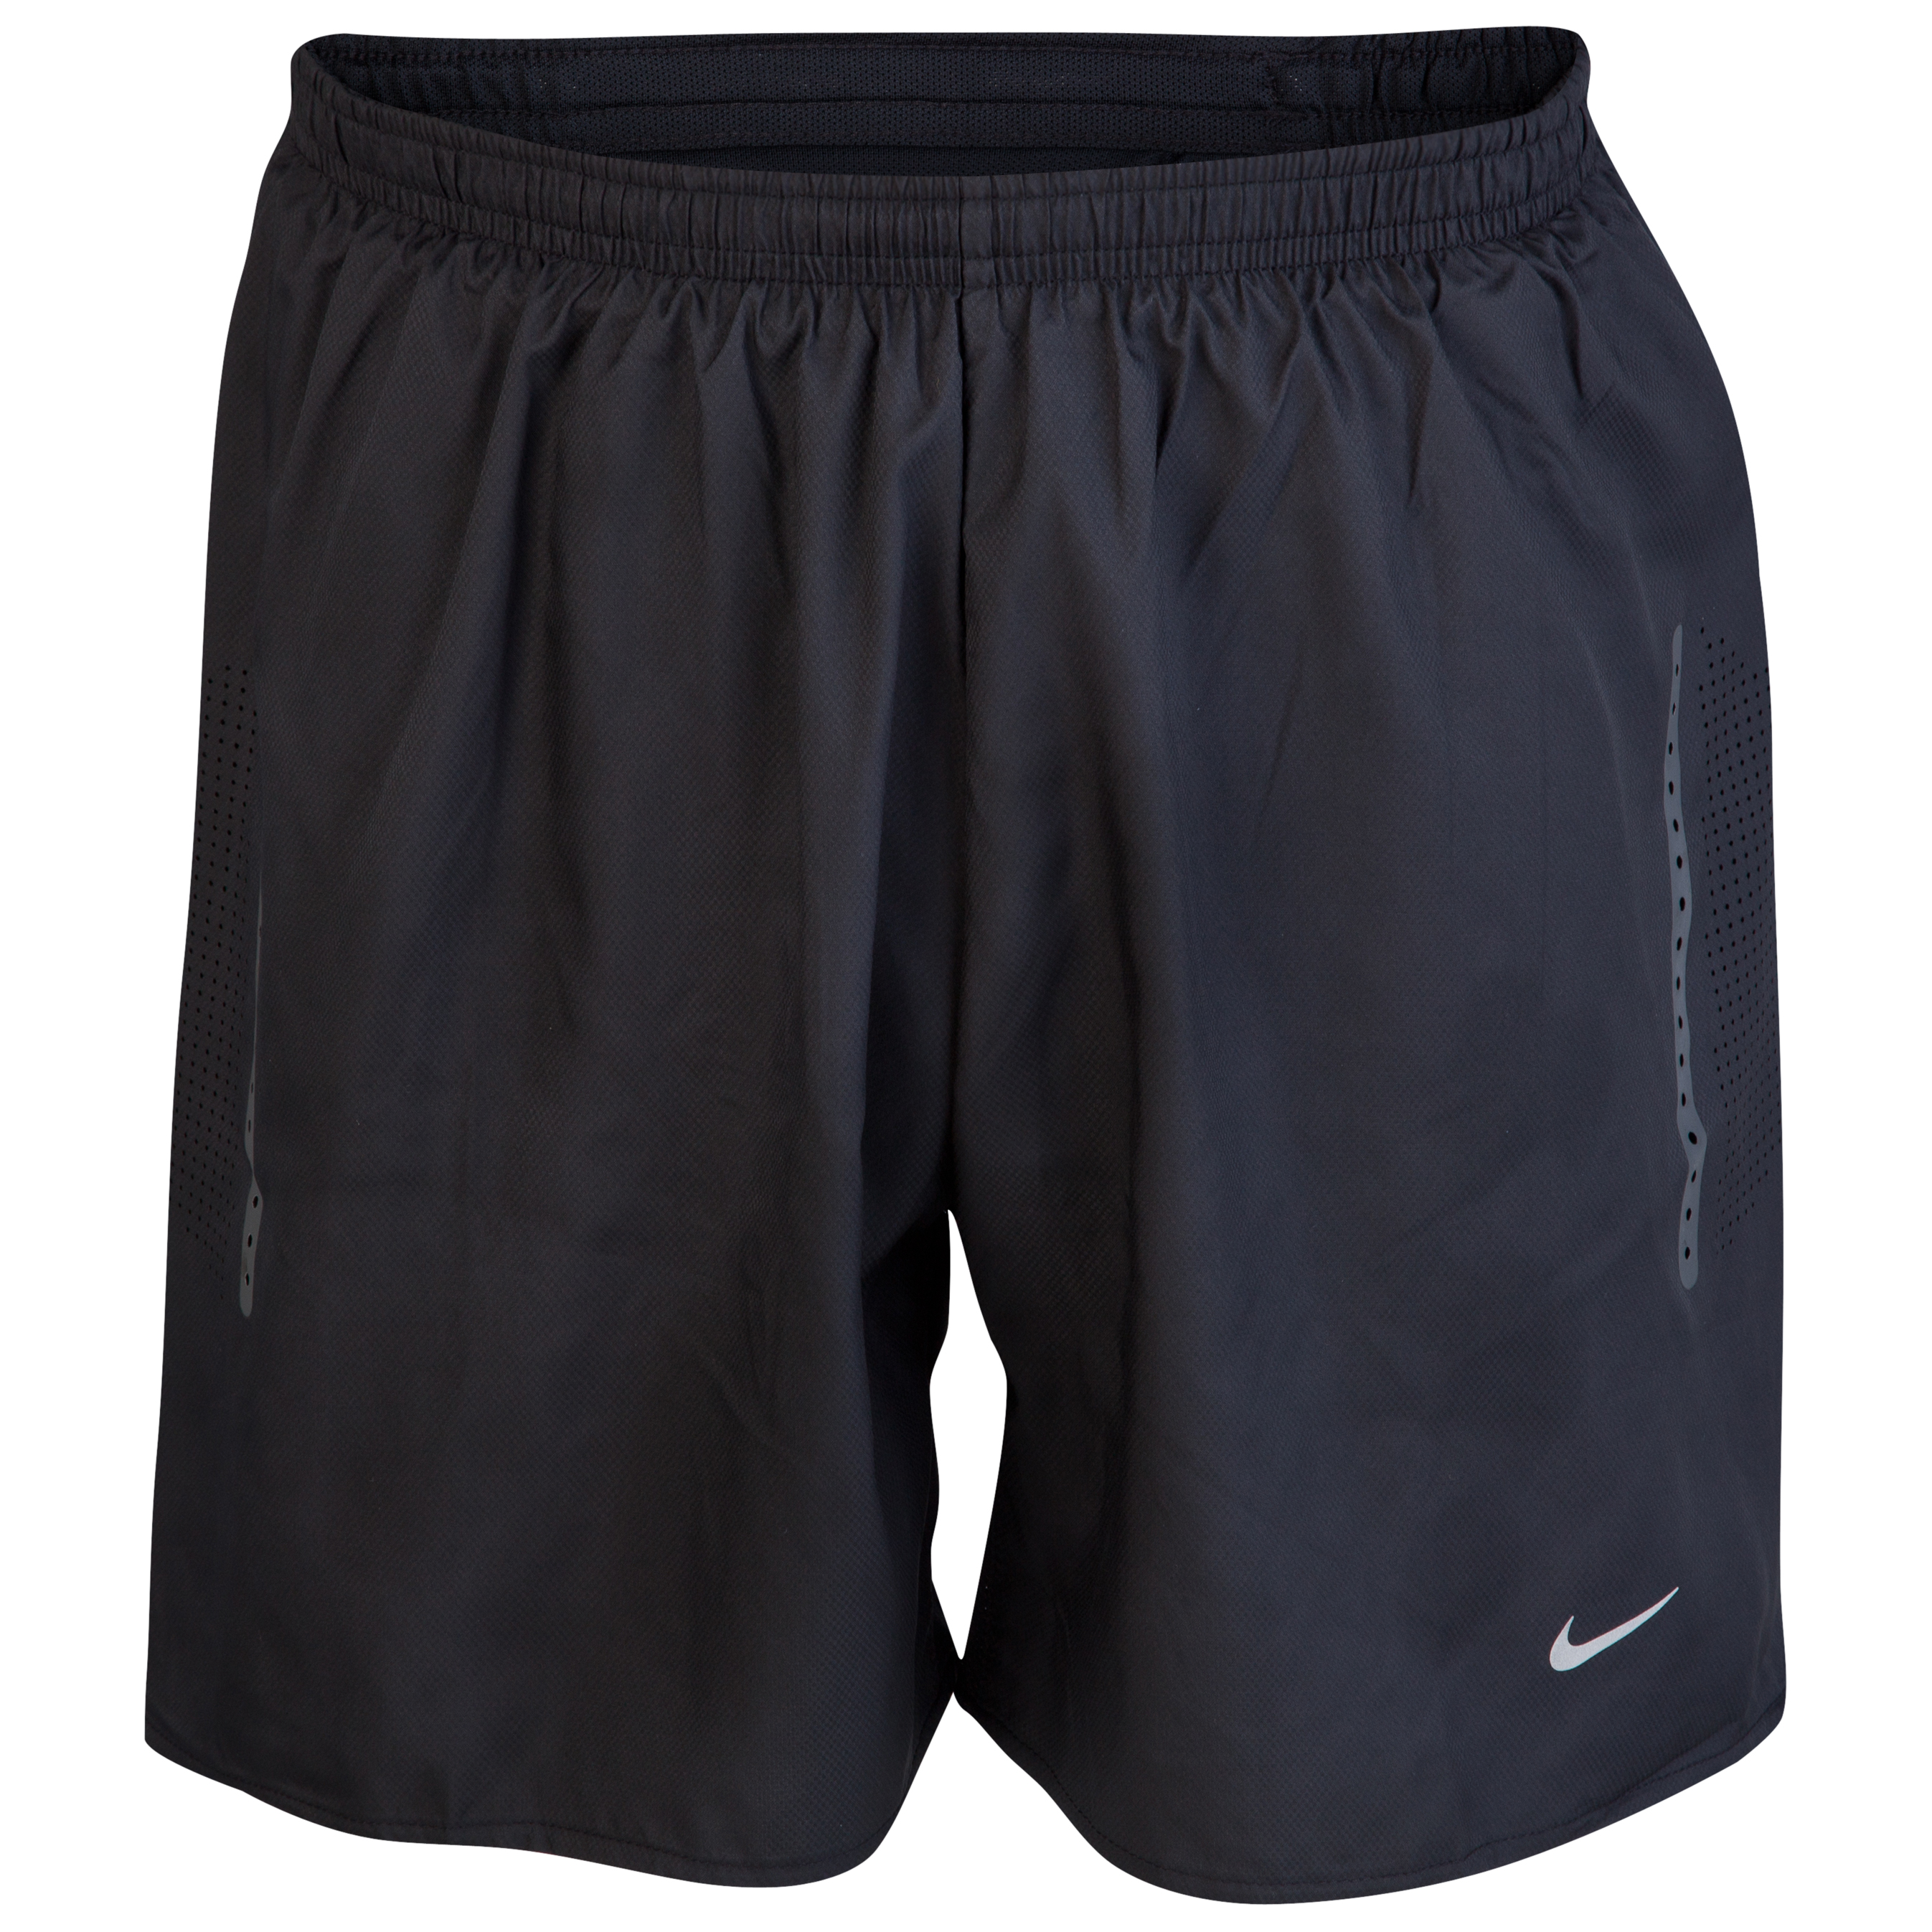 Nike 5 Race Day Shorts - Black/Anthracite/Reflective Silver